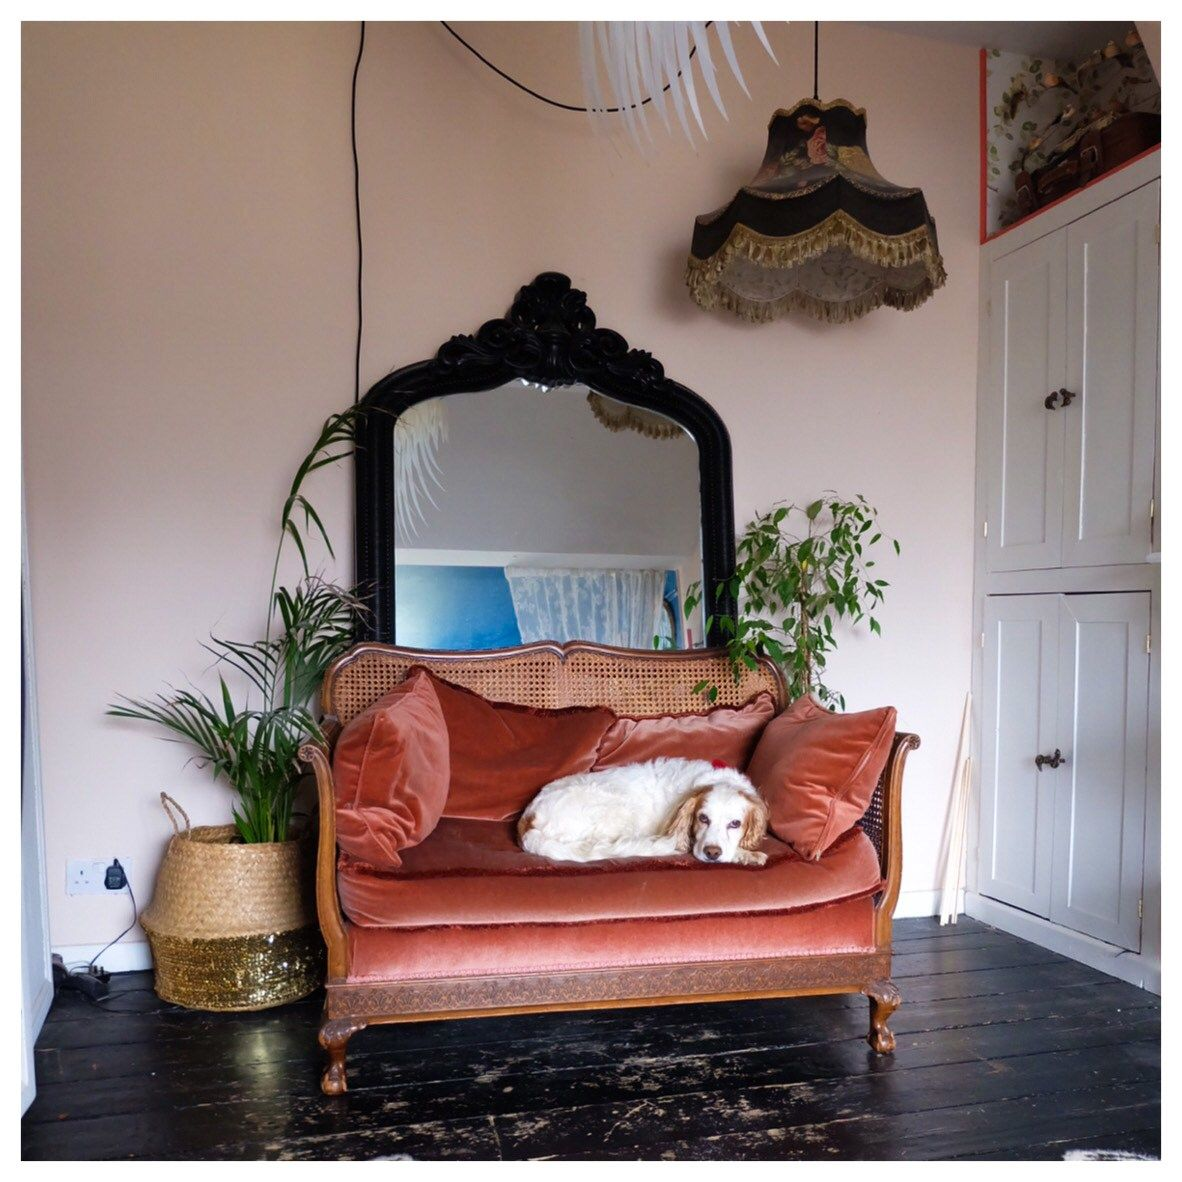 The Creative Eclectic Home of Gold Leaf Queen - Lara Bezzina -vintage furniture finds #livingroom #eclecticinteriors #eclecticlivingroom #eclecticdecor #interiordesign #homedesign #velvetsofa #vintagedecor #vintagefurniture #mirrordecor #interiordecor #homedecor #housetour #eclecticstyle